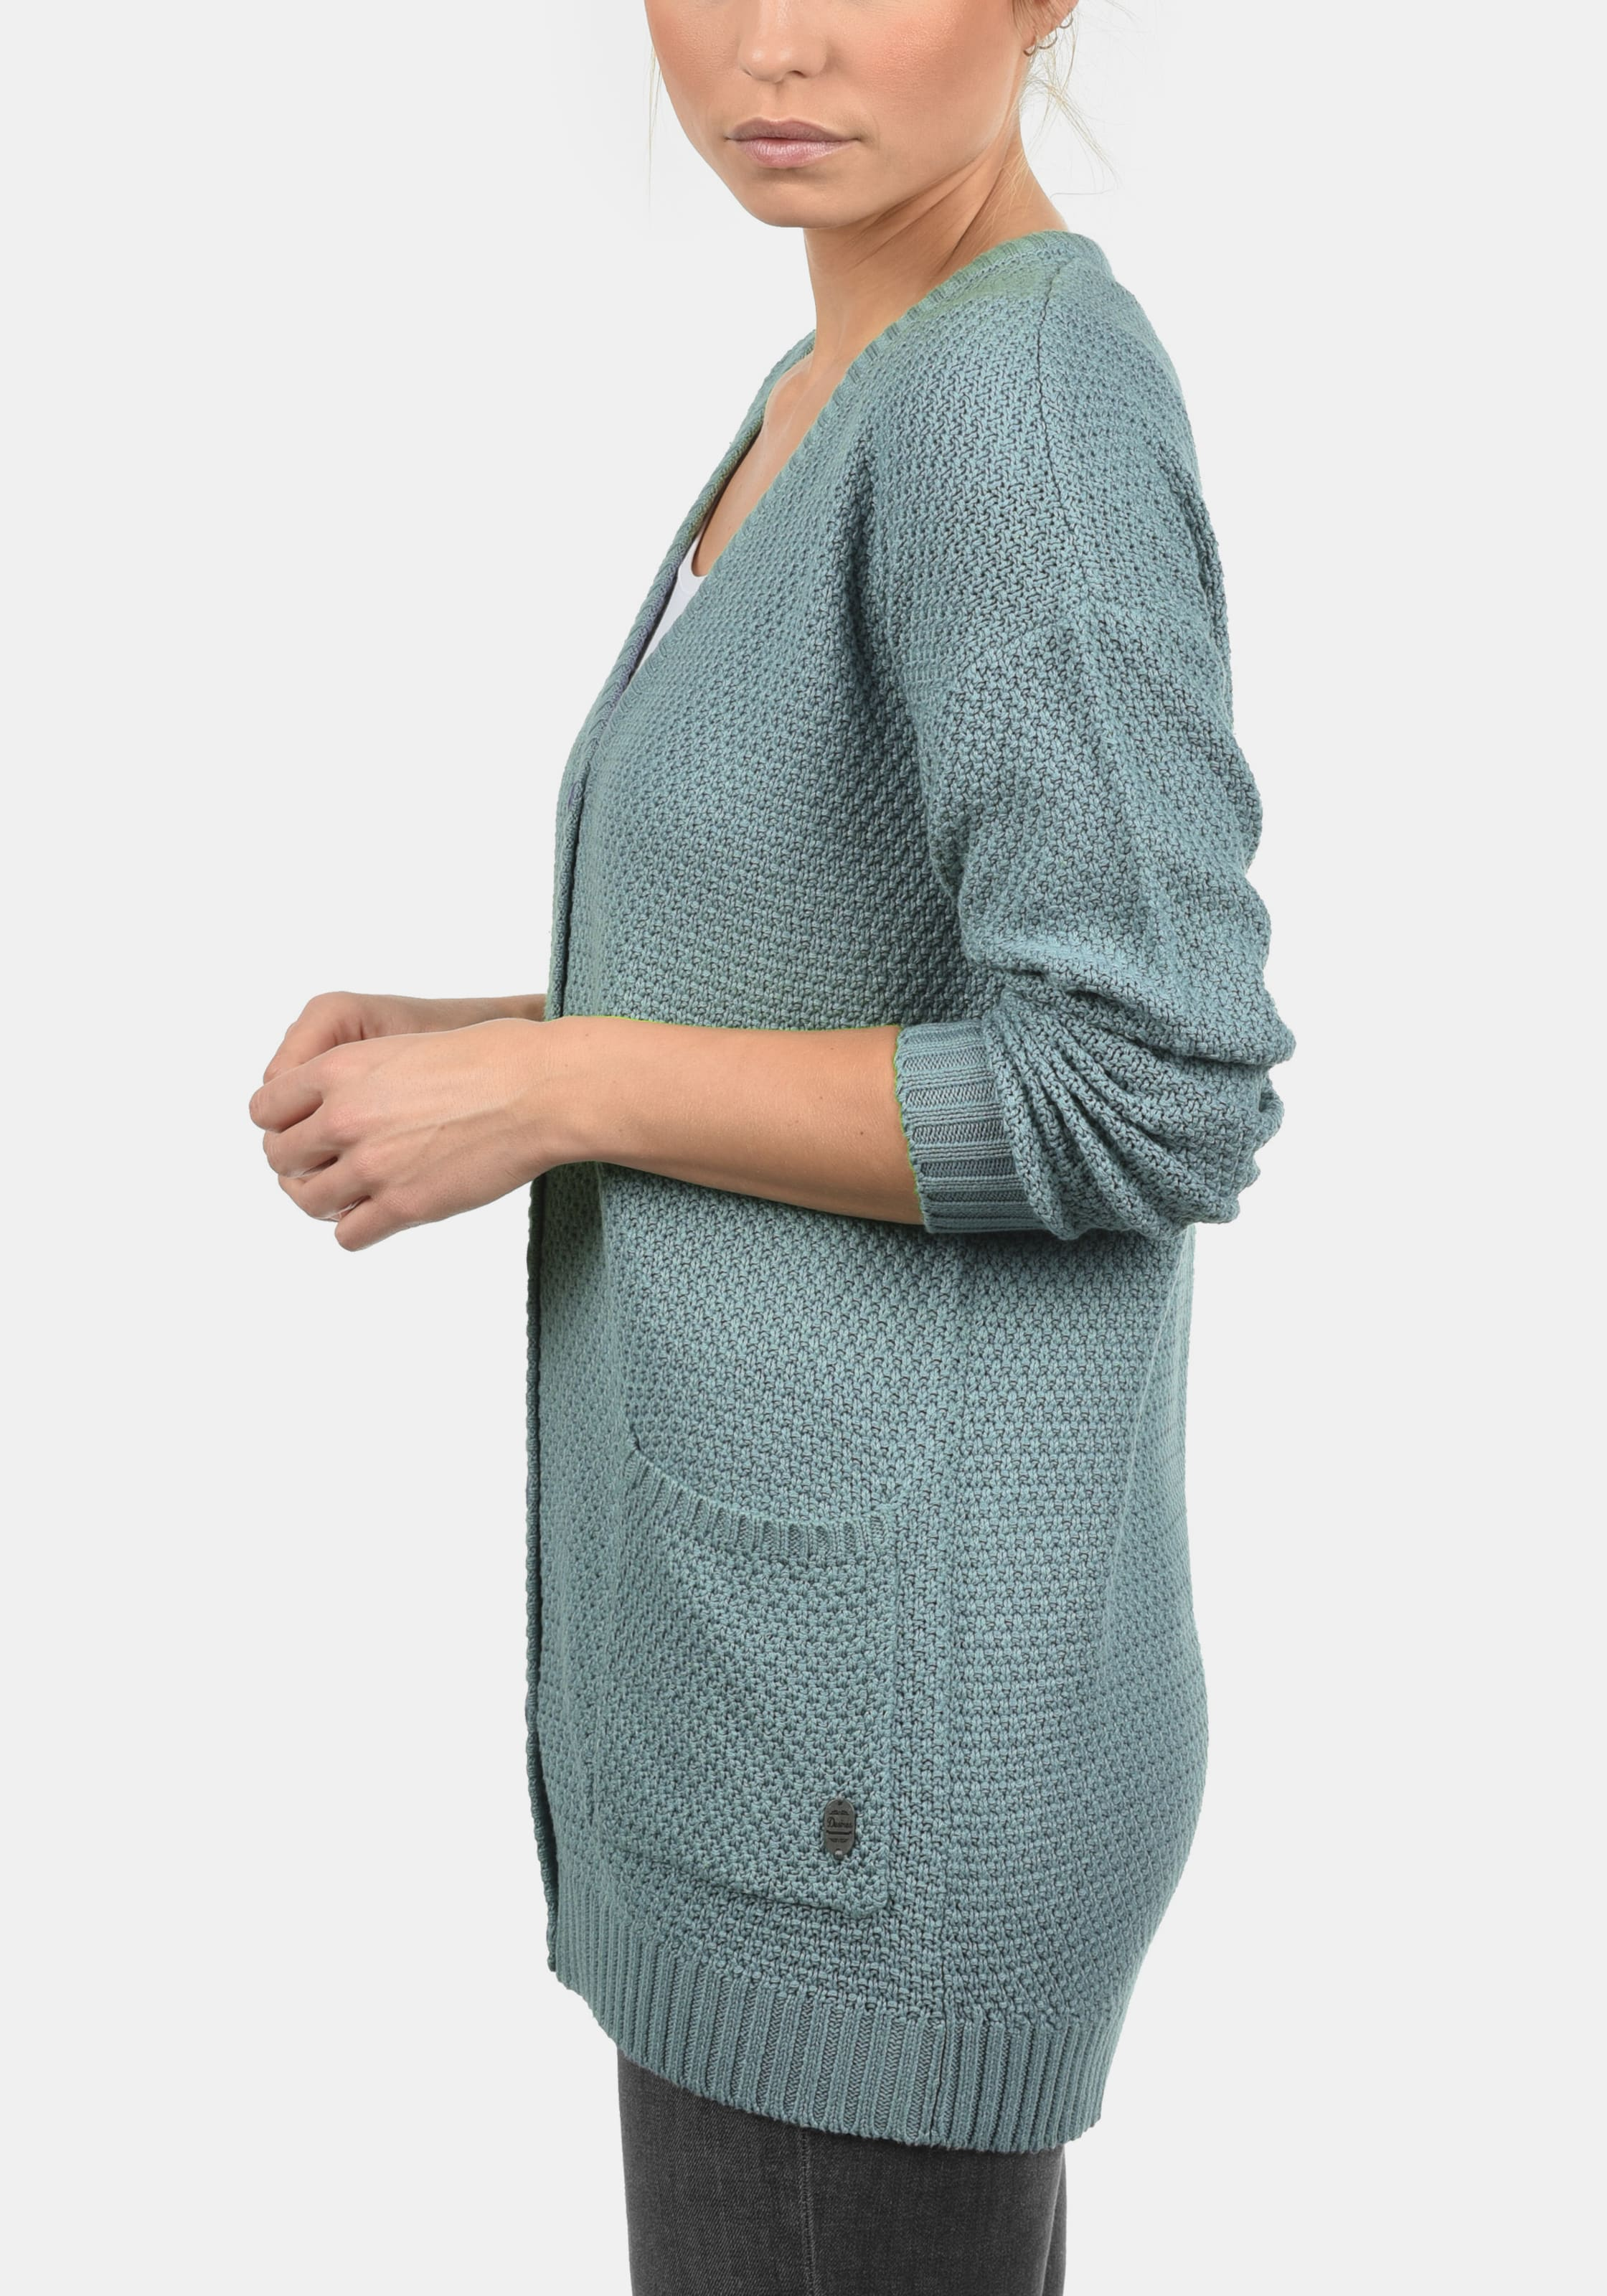 In Pastellblau Pastellblau 'inga' In 'inga' Desires Strickjacke Strickjacke Desires Desires Strickjacke MVSUqGzp